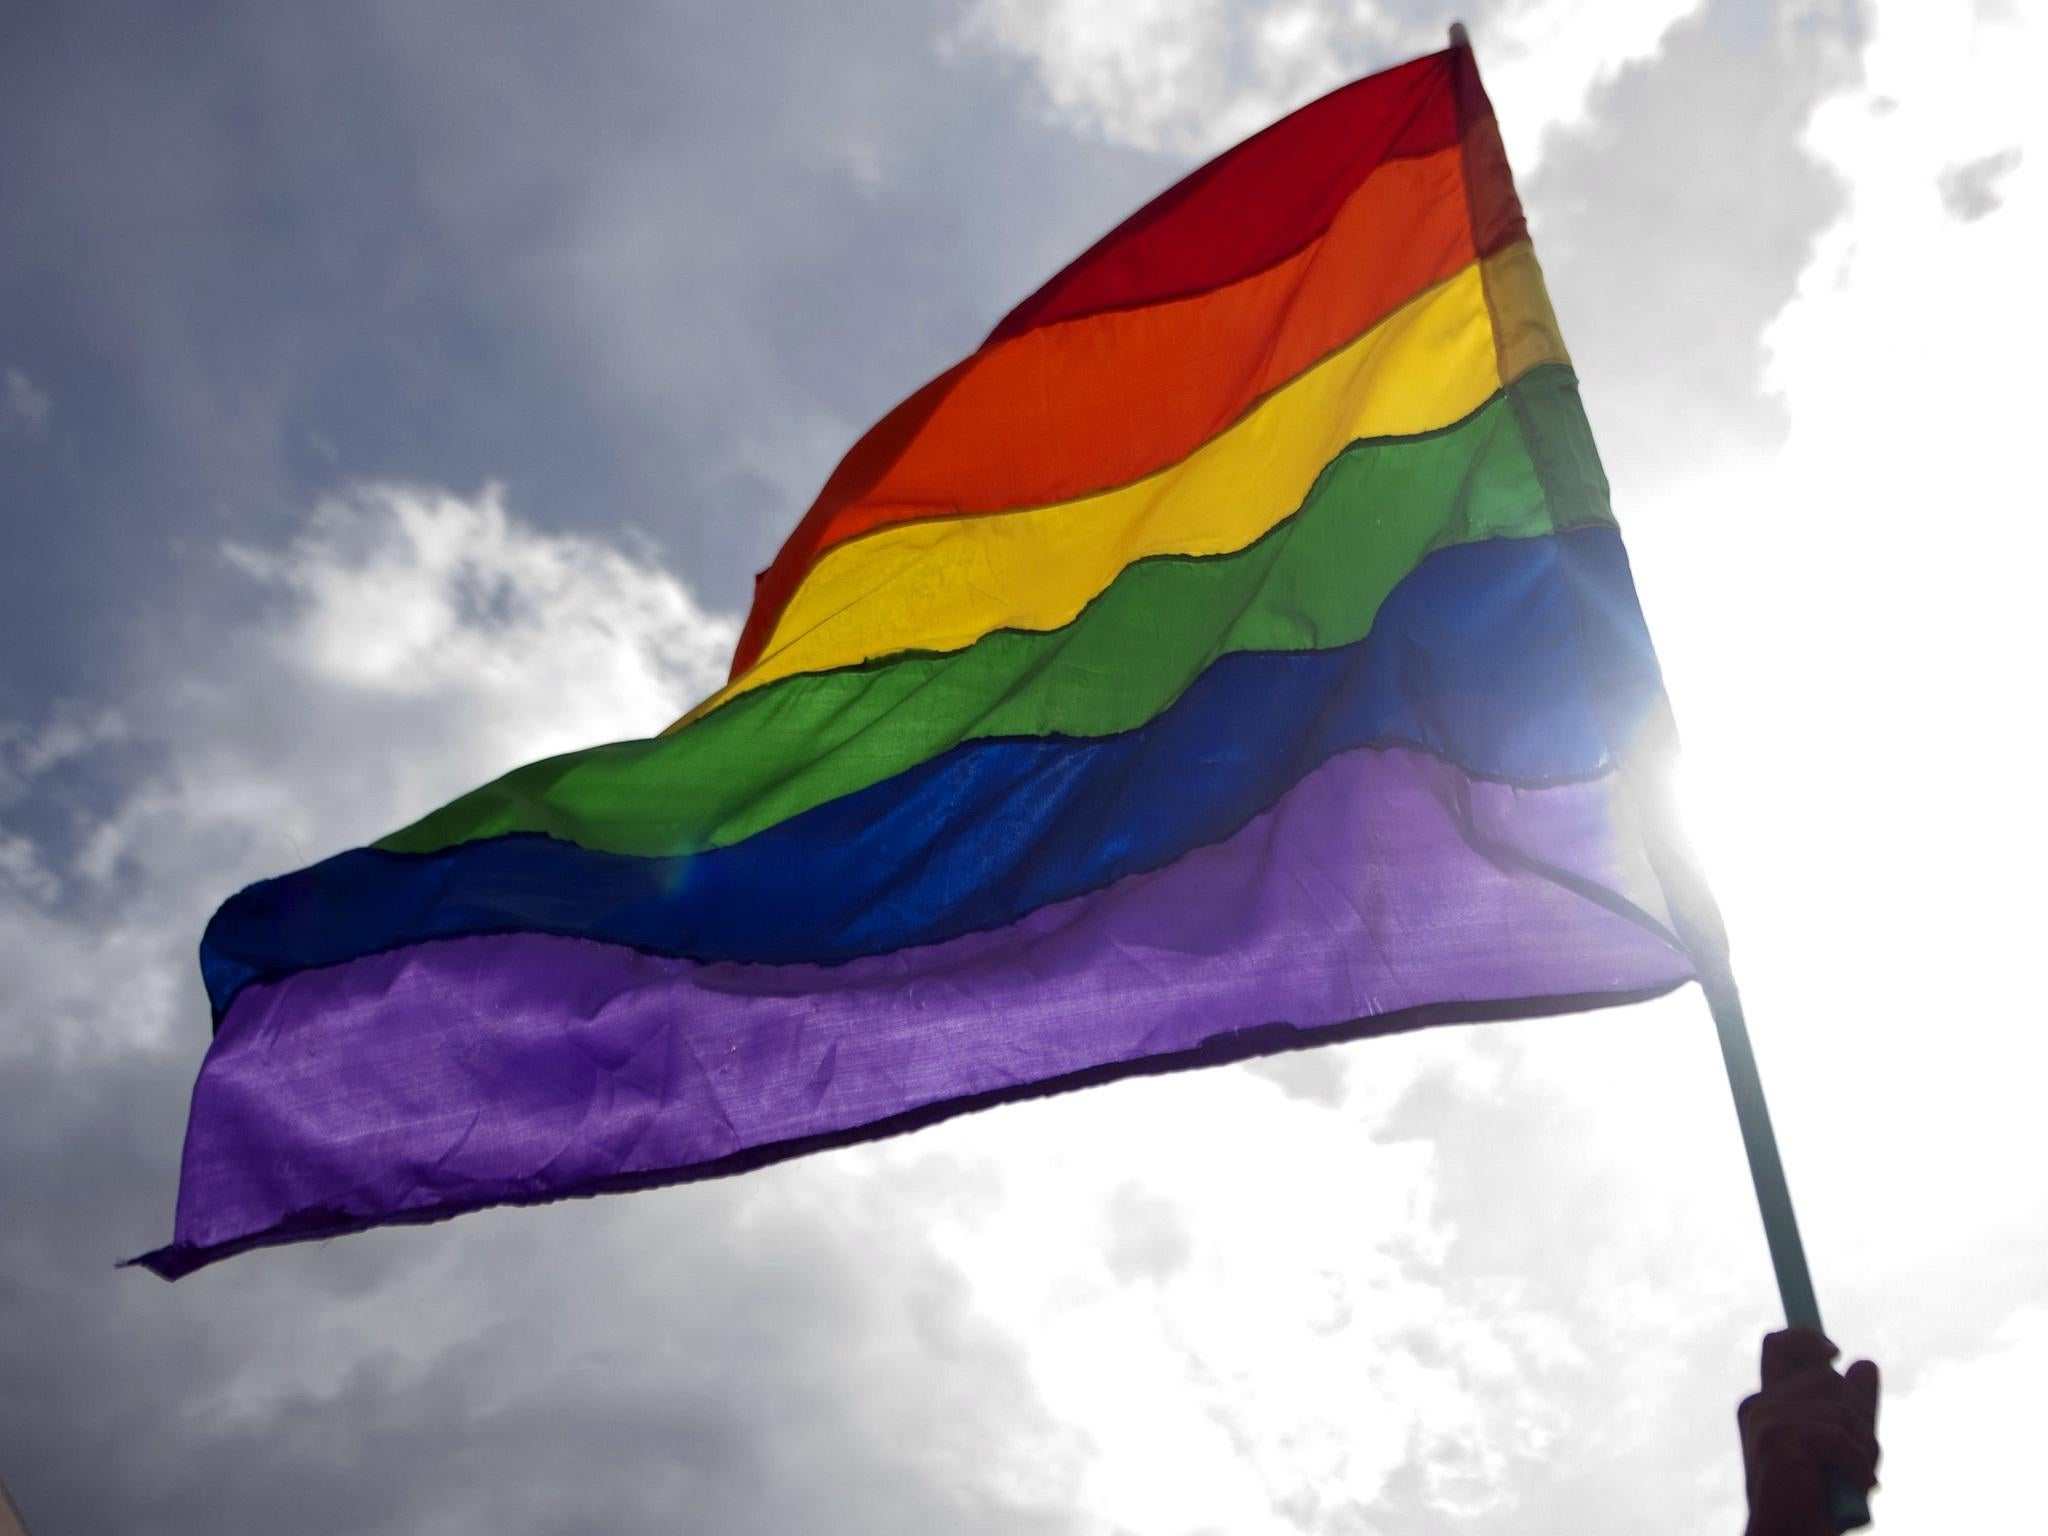 World Health Organisation to consider dropping claim that transgender people are mentally ill